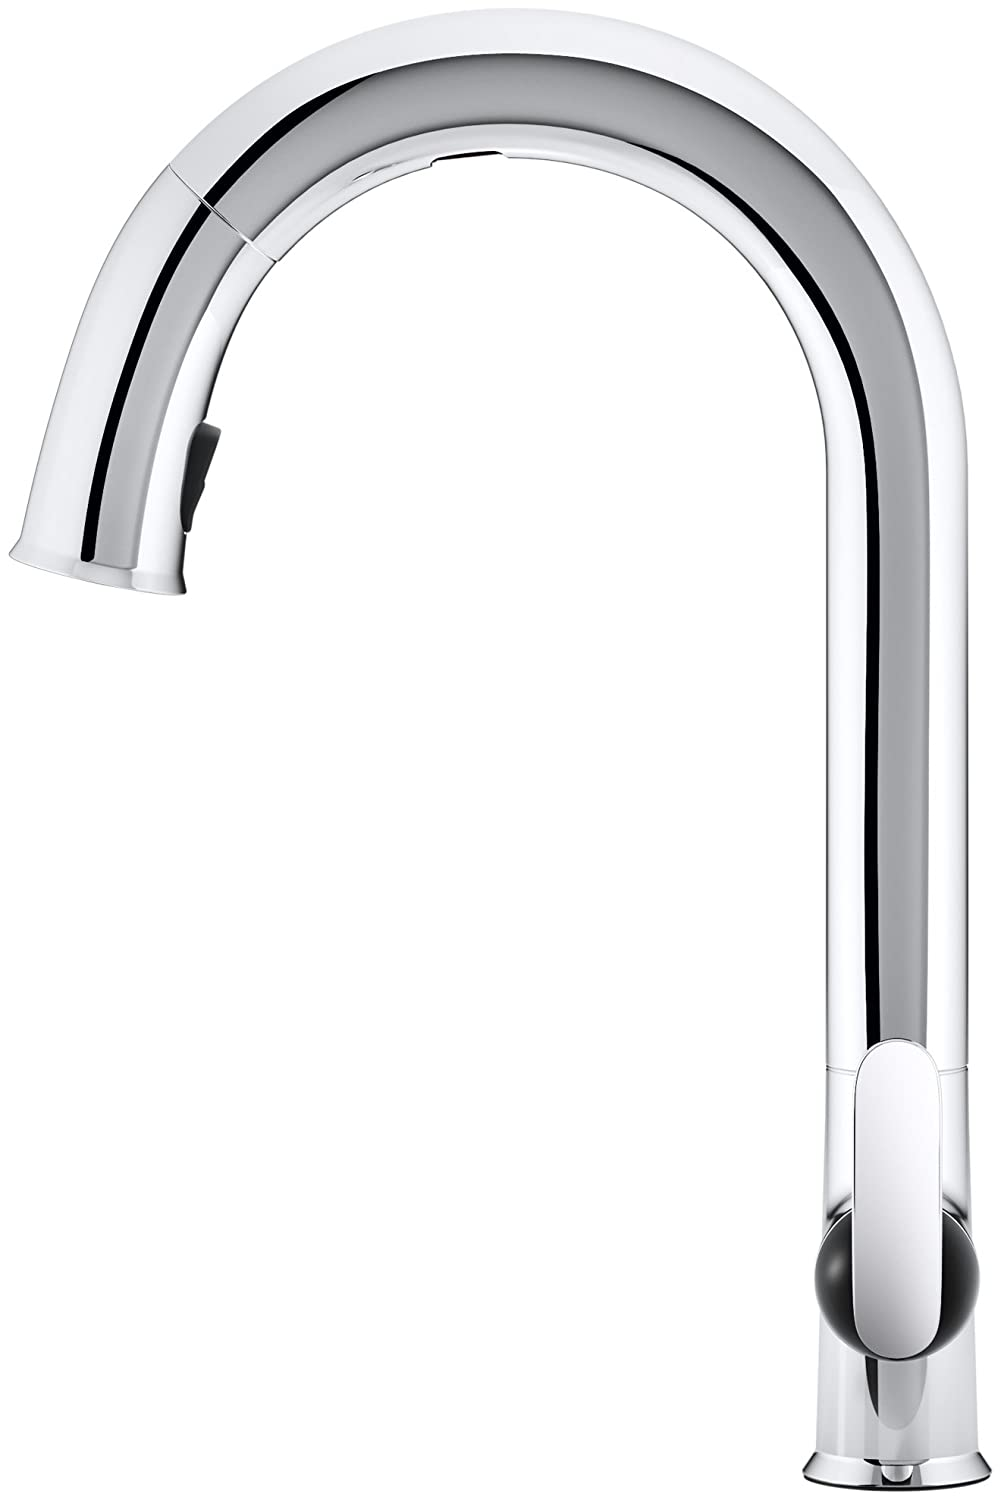 KOHLER K-72218-B7-CP Sensate Touchless Kitchen Faucet, Polished ...